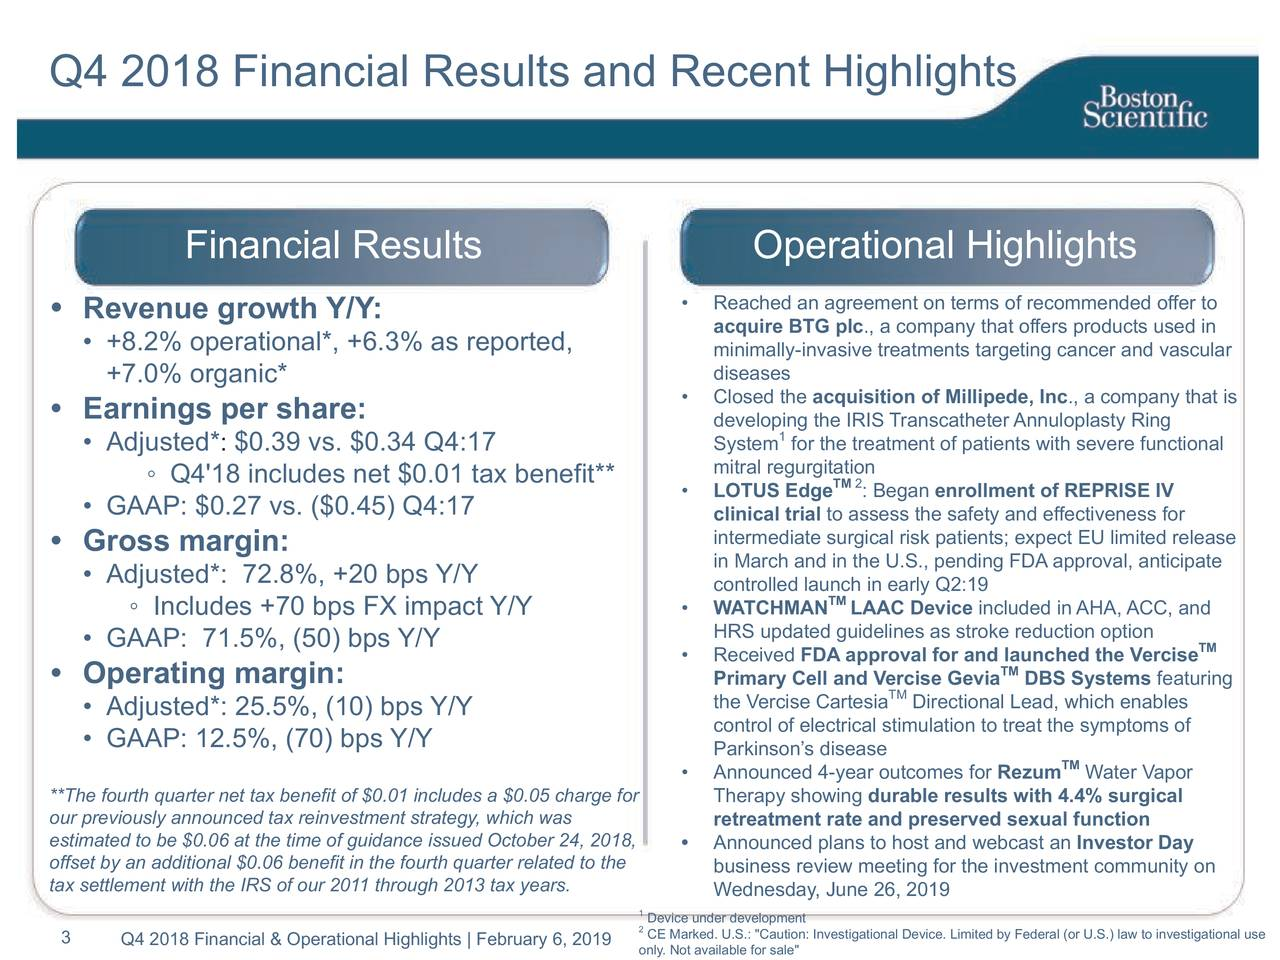 Financial Results Operational Highlights • Revenue growth Y/Y: • Reached an agreement on terms of recommended offer to acquire BTG plc., a company that offers products used in • +8.2% operational*, +6.3% as reported, minimally-invasive treatments targeting cancer and vascular +7.0% organic* diseases • Closed the acquisition of Millipede, Inc., a company that is • Earnings per share: developing the IRIS Transcatheter Annuloplasty Ring 1 • Adjusted* : $0.39 vs. $0.34 Q4:17 System for the treatment of patients with severe functional ◦ Q4'18 includes net $0.01 tax benefit** mitral regurTM 2tion • LOTUS Edge : Began enrollment of REPRISE IV • GAAP: $0.27 vs. ($0.45) Q4:17 clinical trial to assess the safety and effectiveness for • Gross margin: intermediate surgical risk patients; expect EU limited release in March and in the U.S., pending FDA approval, anticipate • Adjusted*: 72.8%, +20 bps Y/Y controlled launch in early Q2:19 ◦ Includes +70 bps FX impact Y/Y • WATCHMAN TMLAAC Device included in AHA, ACC, and • GAAP: 71.5%, (50) bps Y/Y HRS updated guidelines as stroke reduction option TM • Received FDA approval for and TMunched the Vercise • Operating margin: Primary Cell and VTMcise Gevia DBS Systems featuring • Adjusted*: 25.5%, (10) bps Y/Y the Vercise Cartesia Directional Lead, which enables control of electrical stimulation to treat the symptoms of • GAAP: 12.5%, (70) bps Y/Y Parkinson's disease • Announced 4-year outcomes for Rezum TMWater Vapor **The fourth quarter net tax benefit of $0.01 includes a $0.05 charge fTherapy showing durable results with 4.4% surgical our previously announced tax reinvestment strategy, which was retreatment rate and preserved sexual function estimated to be $0.06 at the time of guidance issued October 24, 20•8, Announced plans to host and webcast an Investor Day offset by an additional $0.06 benefit in the fourth quarter related to business review meeting for the investment community on tax settlement with the IRS of our 2011 throug